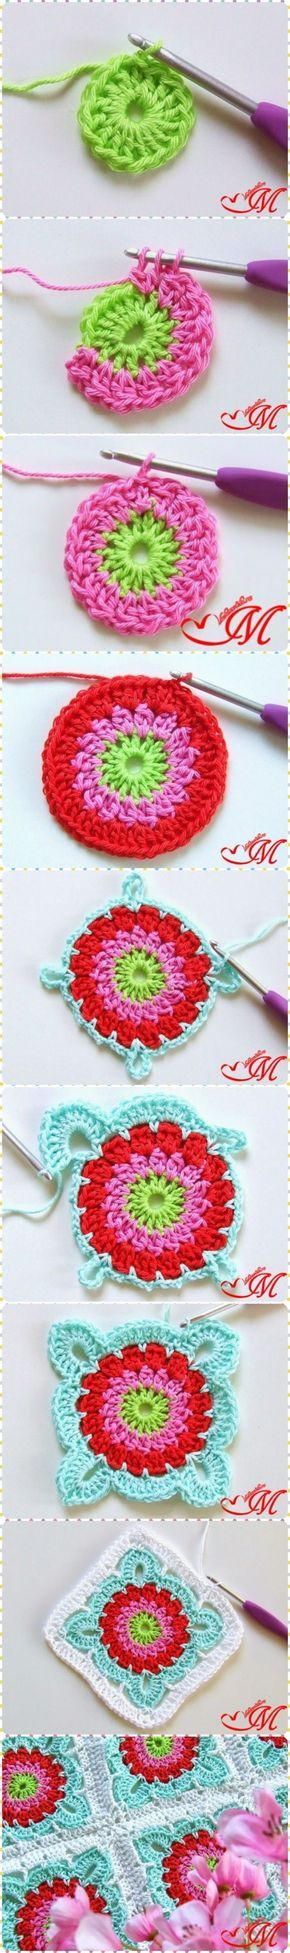 How to Crochet Pretty Granny Square Blanket with Free Pattern by Ranae Cozzone